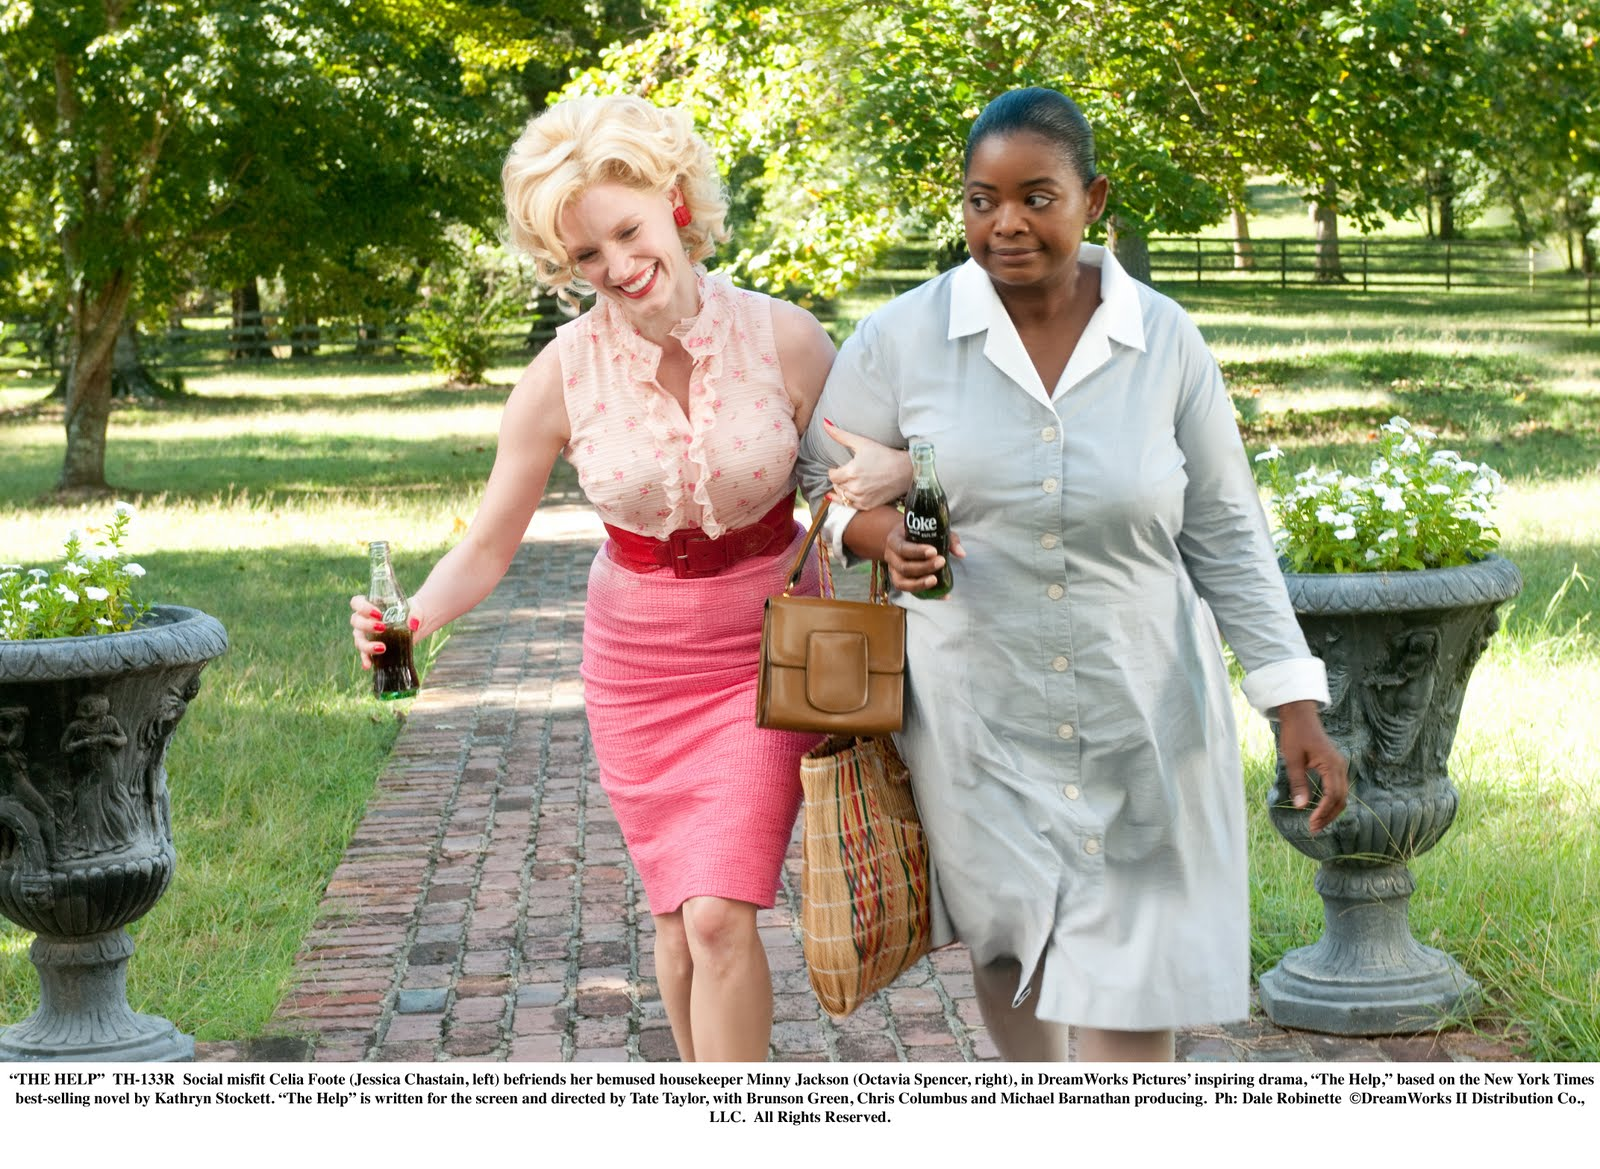 the help movie review the review>> sometimes you see a film and it makes you really want to the book this is one of those films viewing it in itself is very good